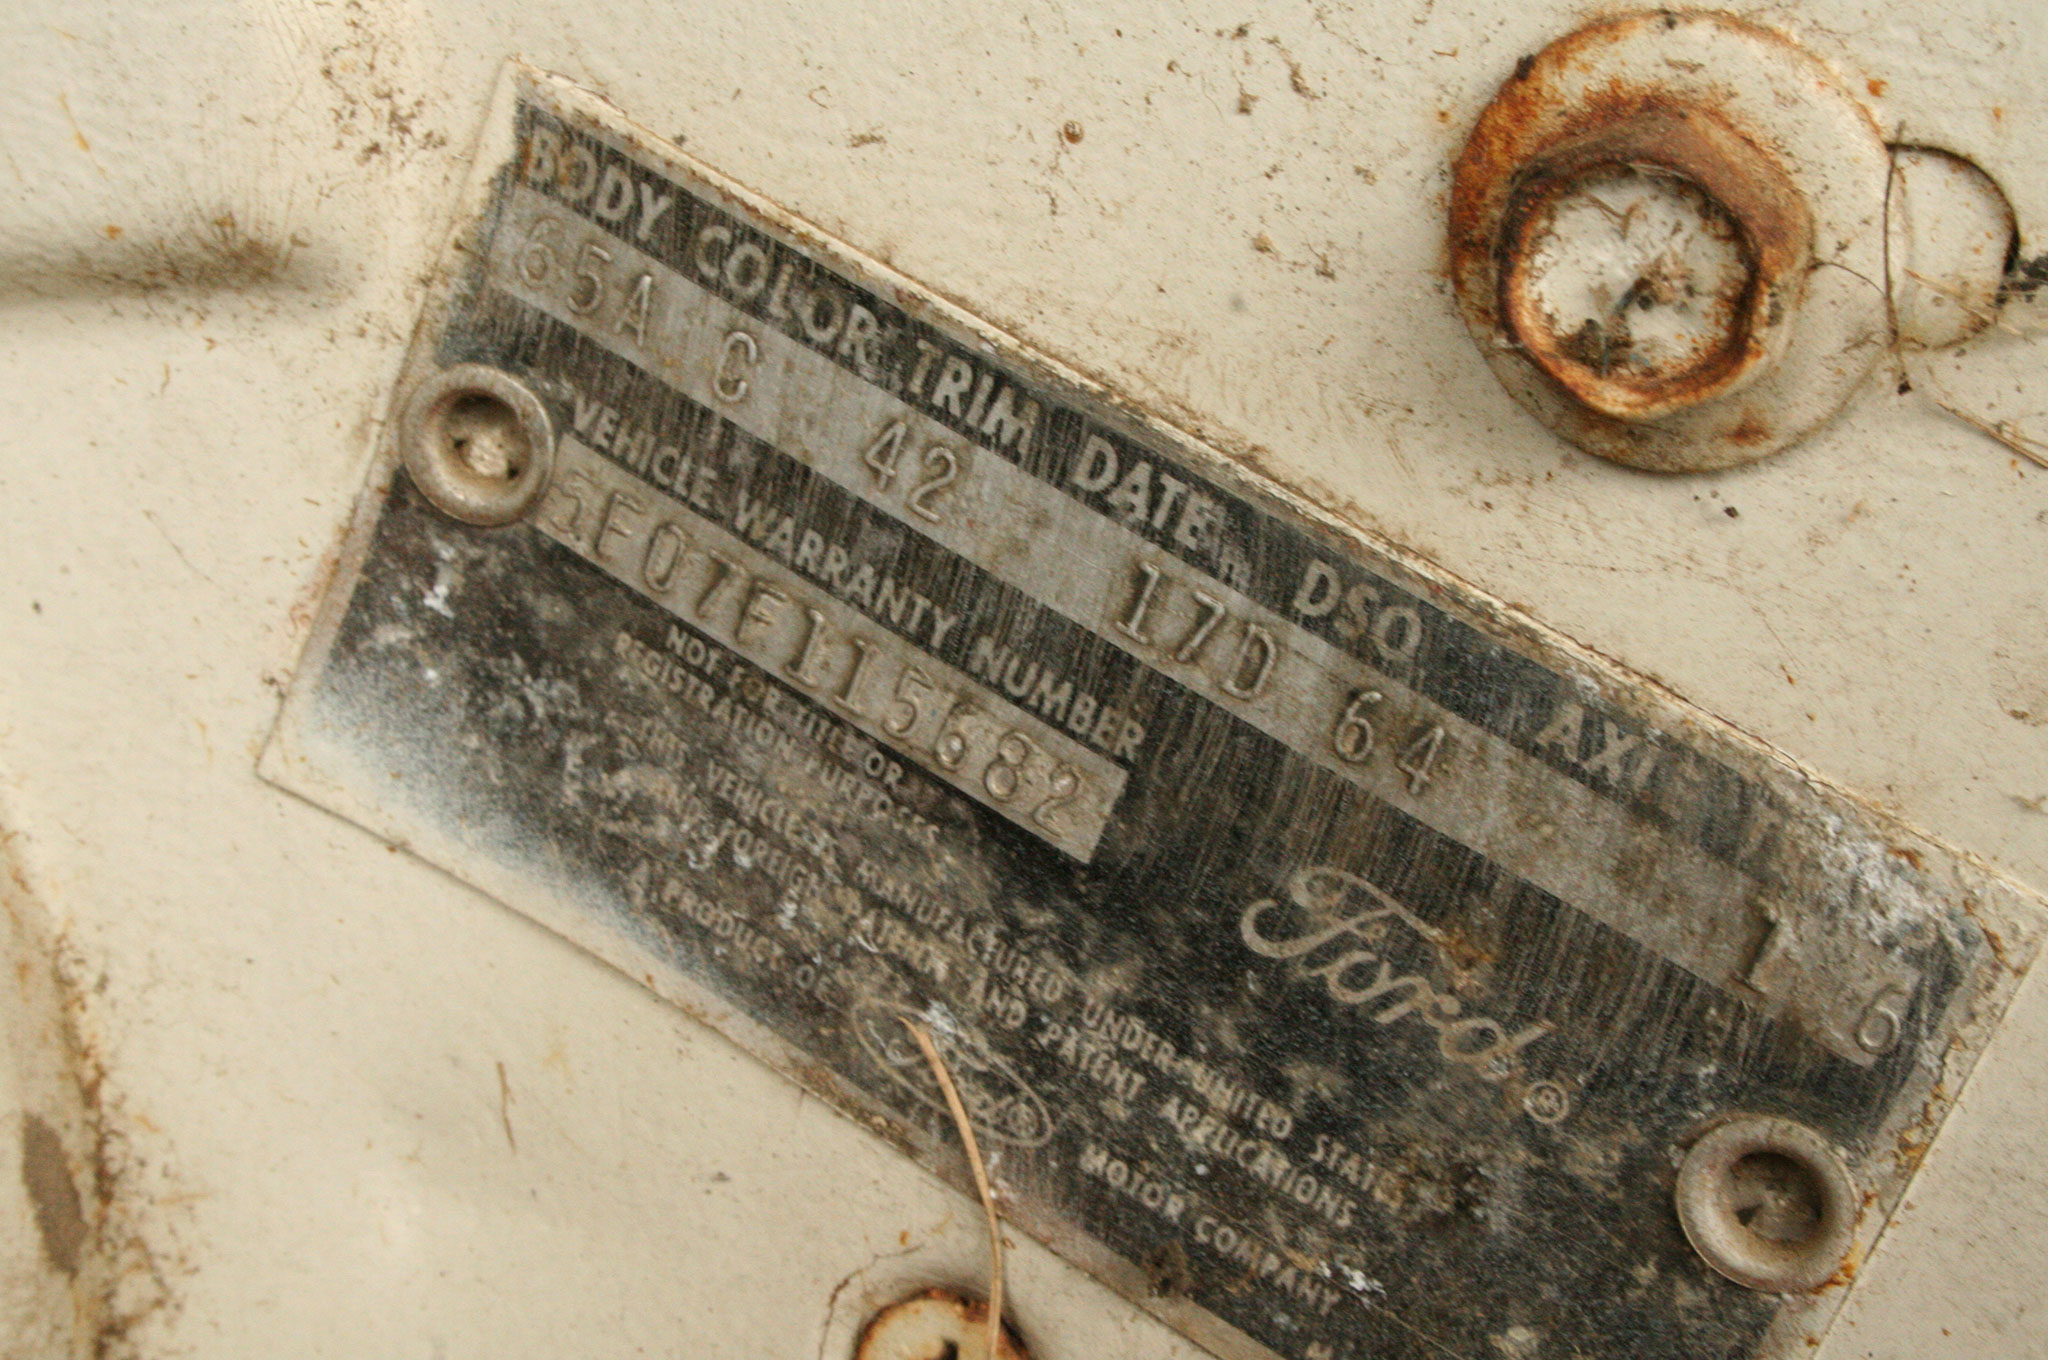 13 1964 Ford Mustang Door Data Plate